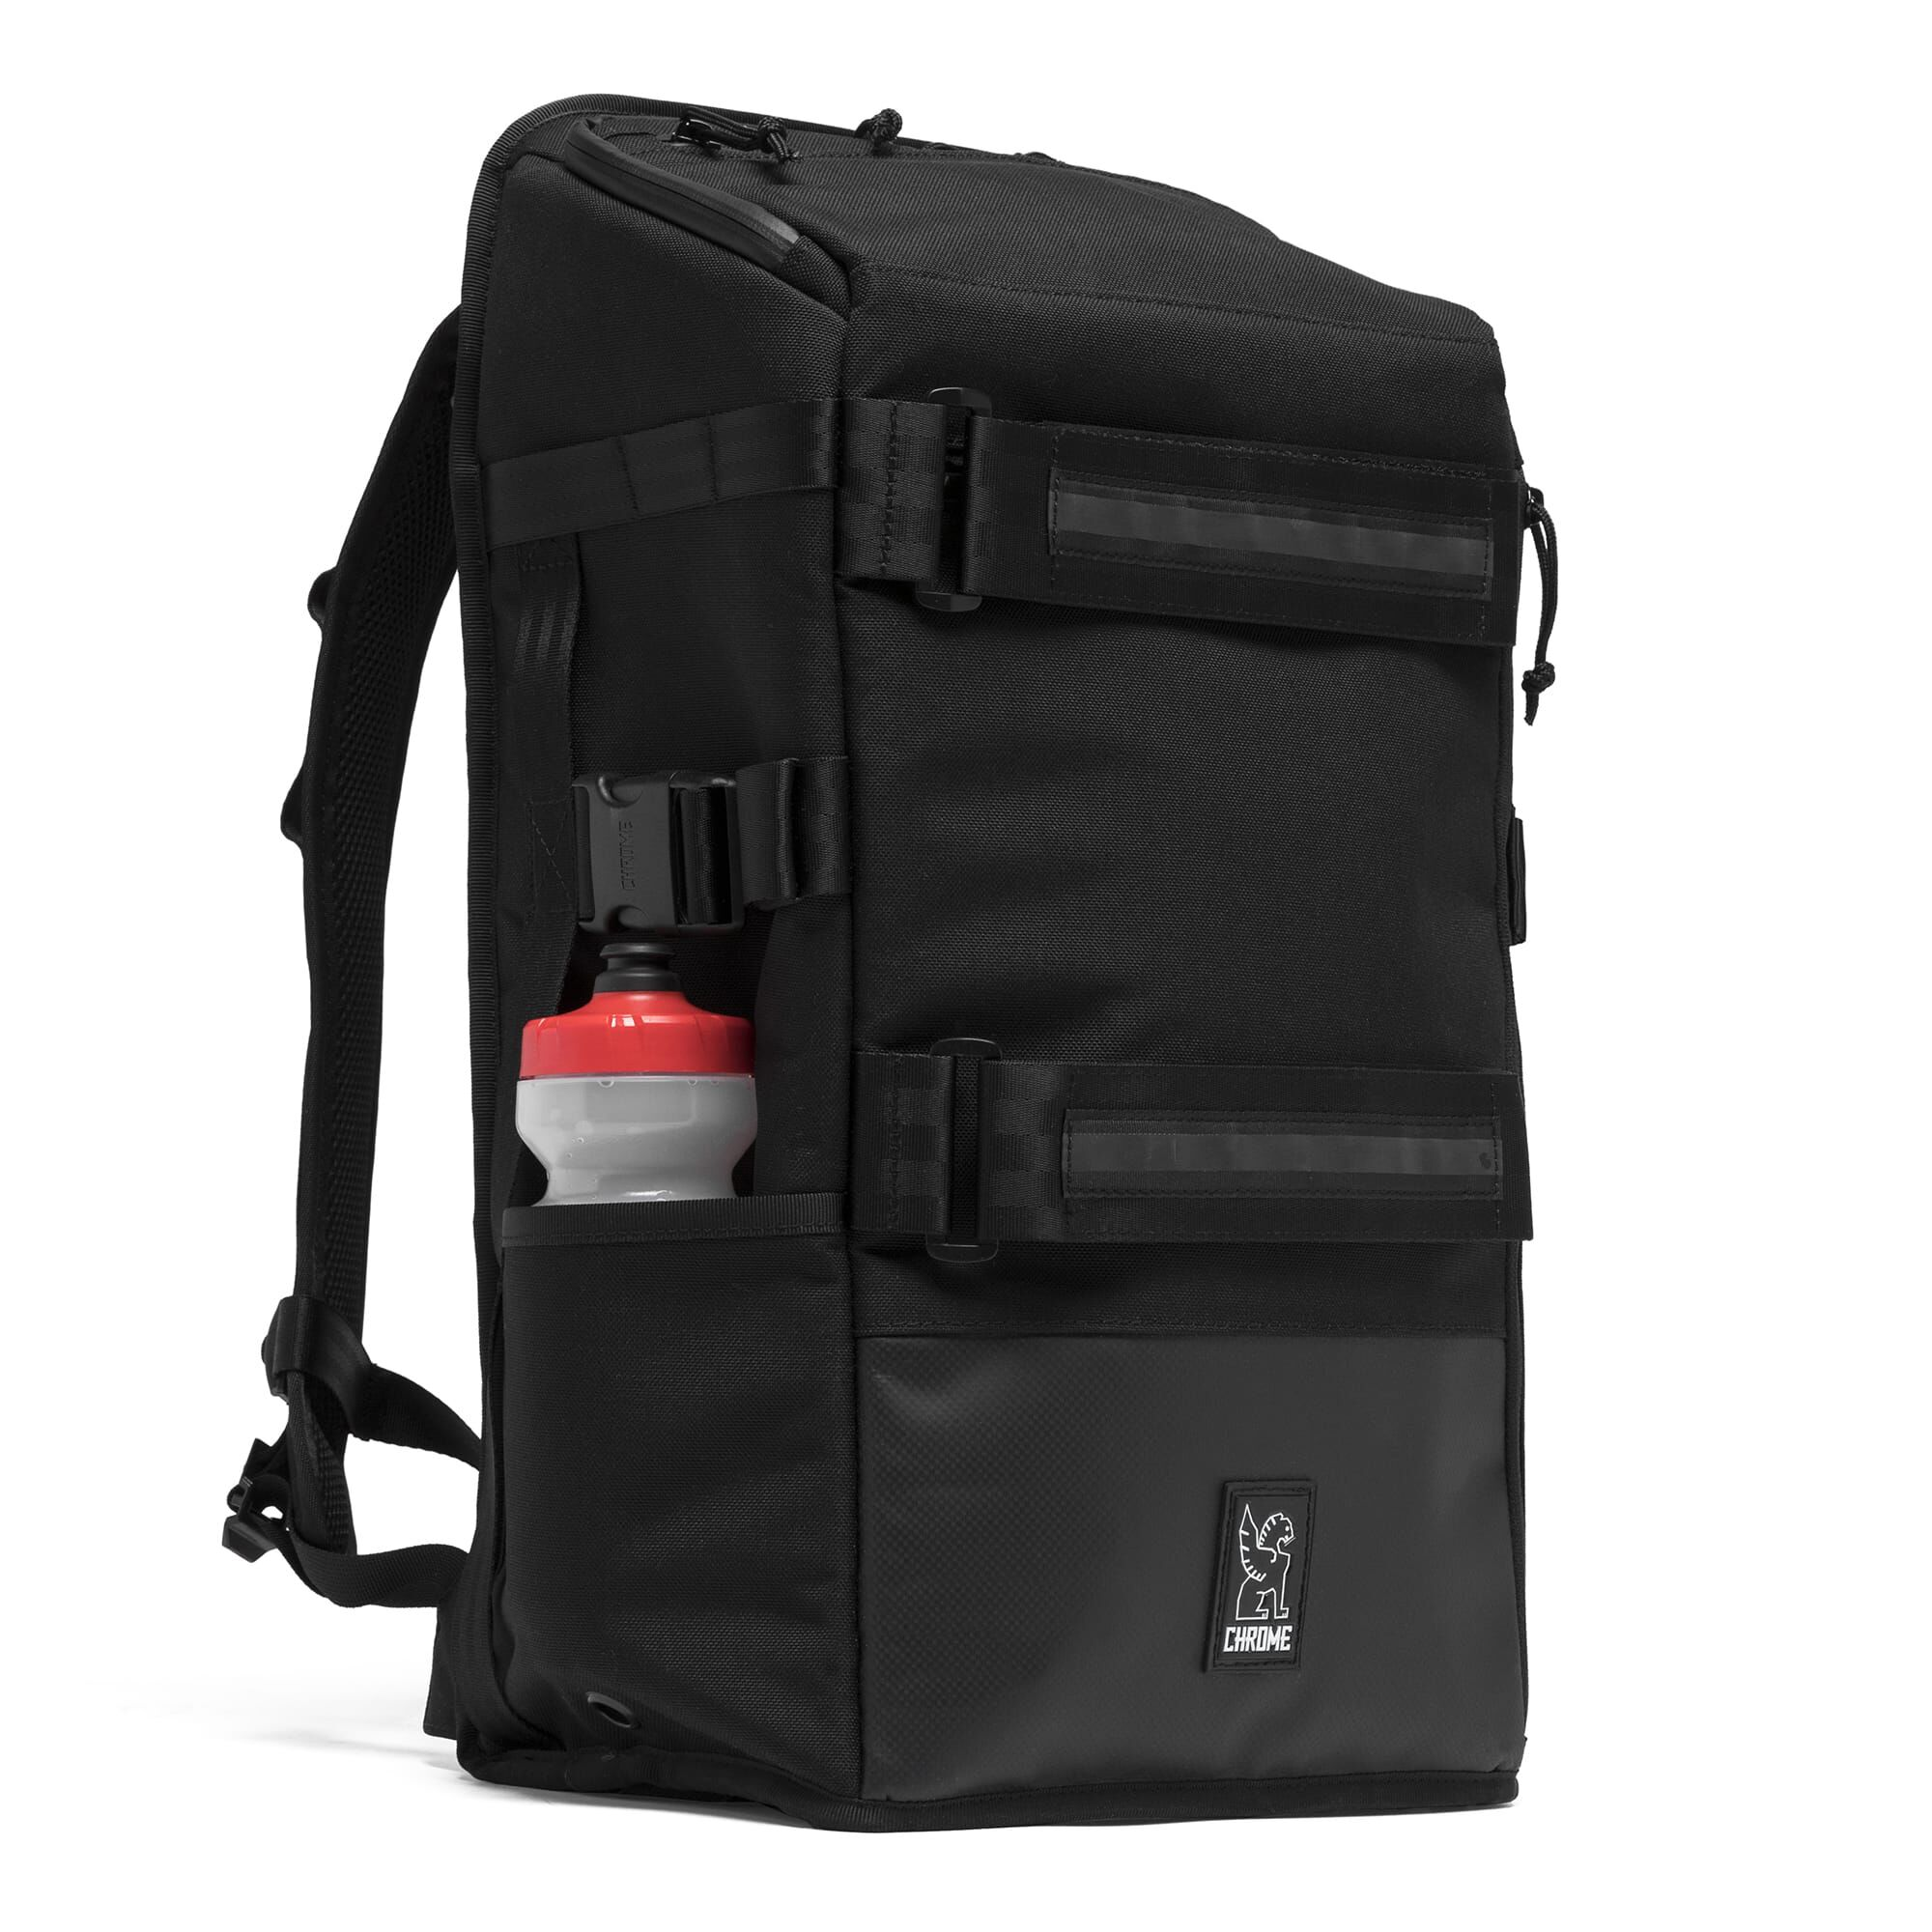 Niko F-Stop Camera Backpack - Fits laptops up to 13